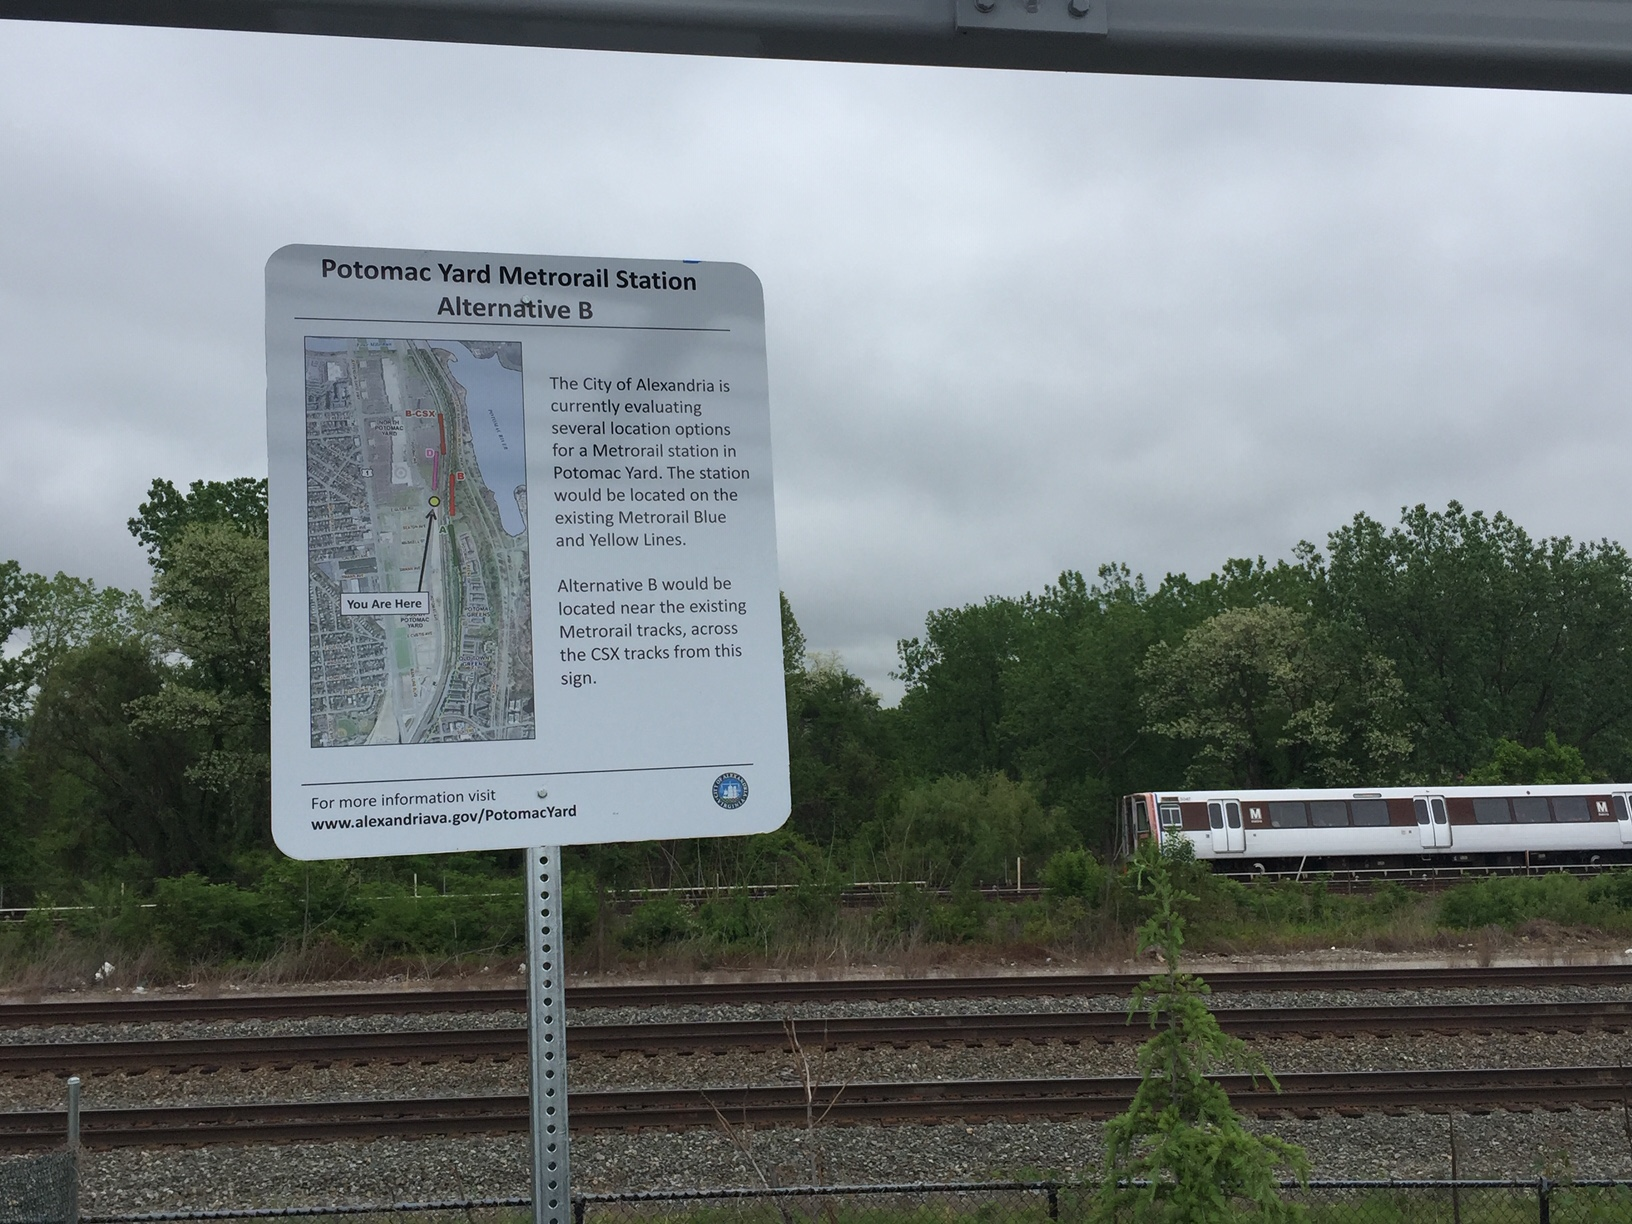 The public is invited to the Potomac Yard Metrorail Implementation Work Group (PYMIG) meeting scheduled for Monday, January 14, from 7 to 9 p.m., at the Charles Houston Recreation Center, Senior Room (901 Wythe Street).